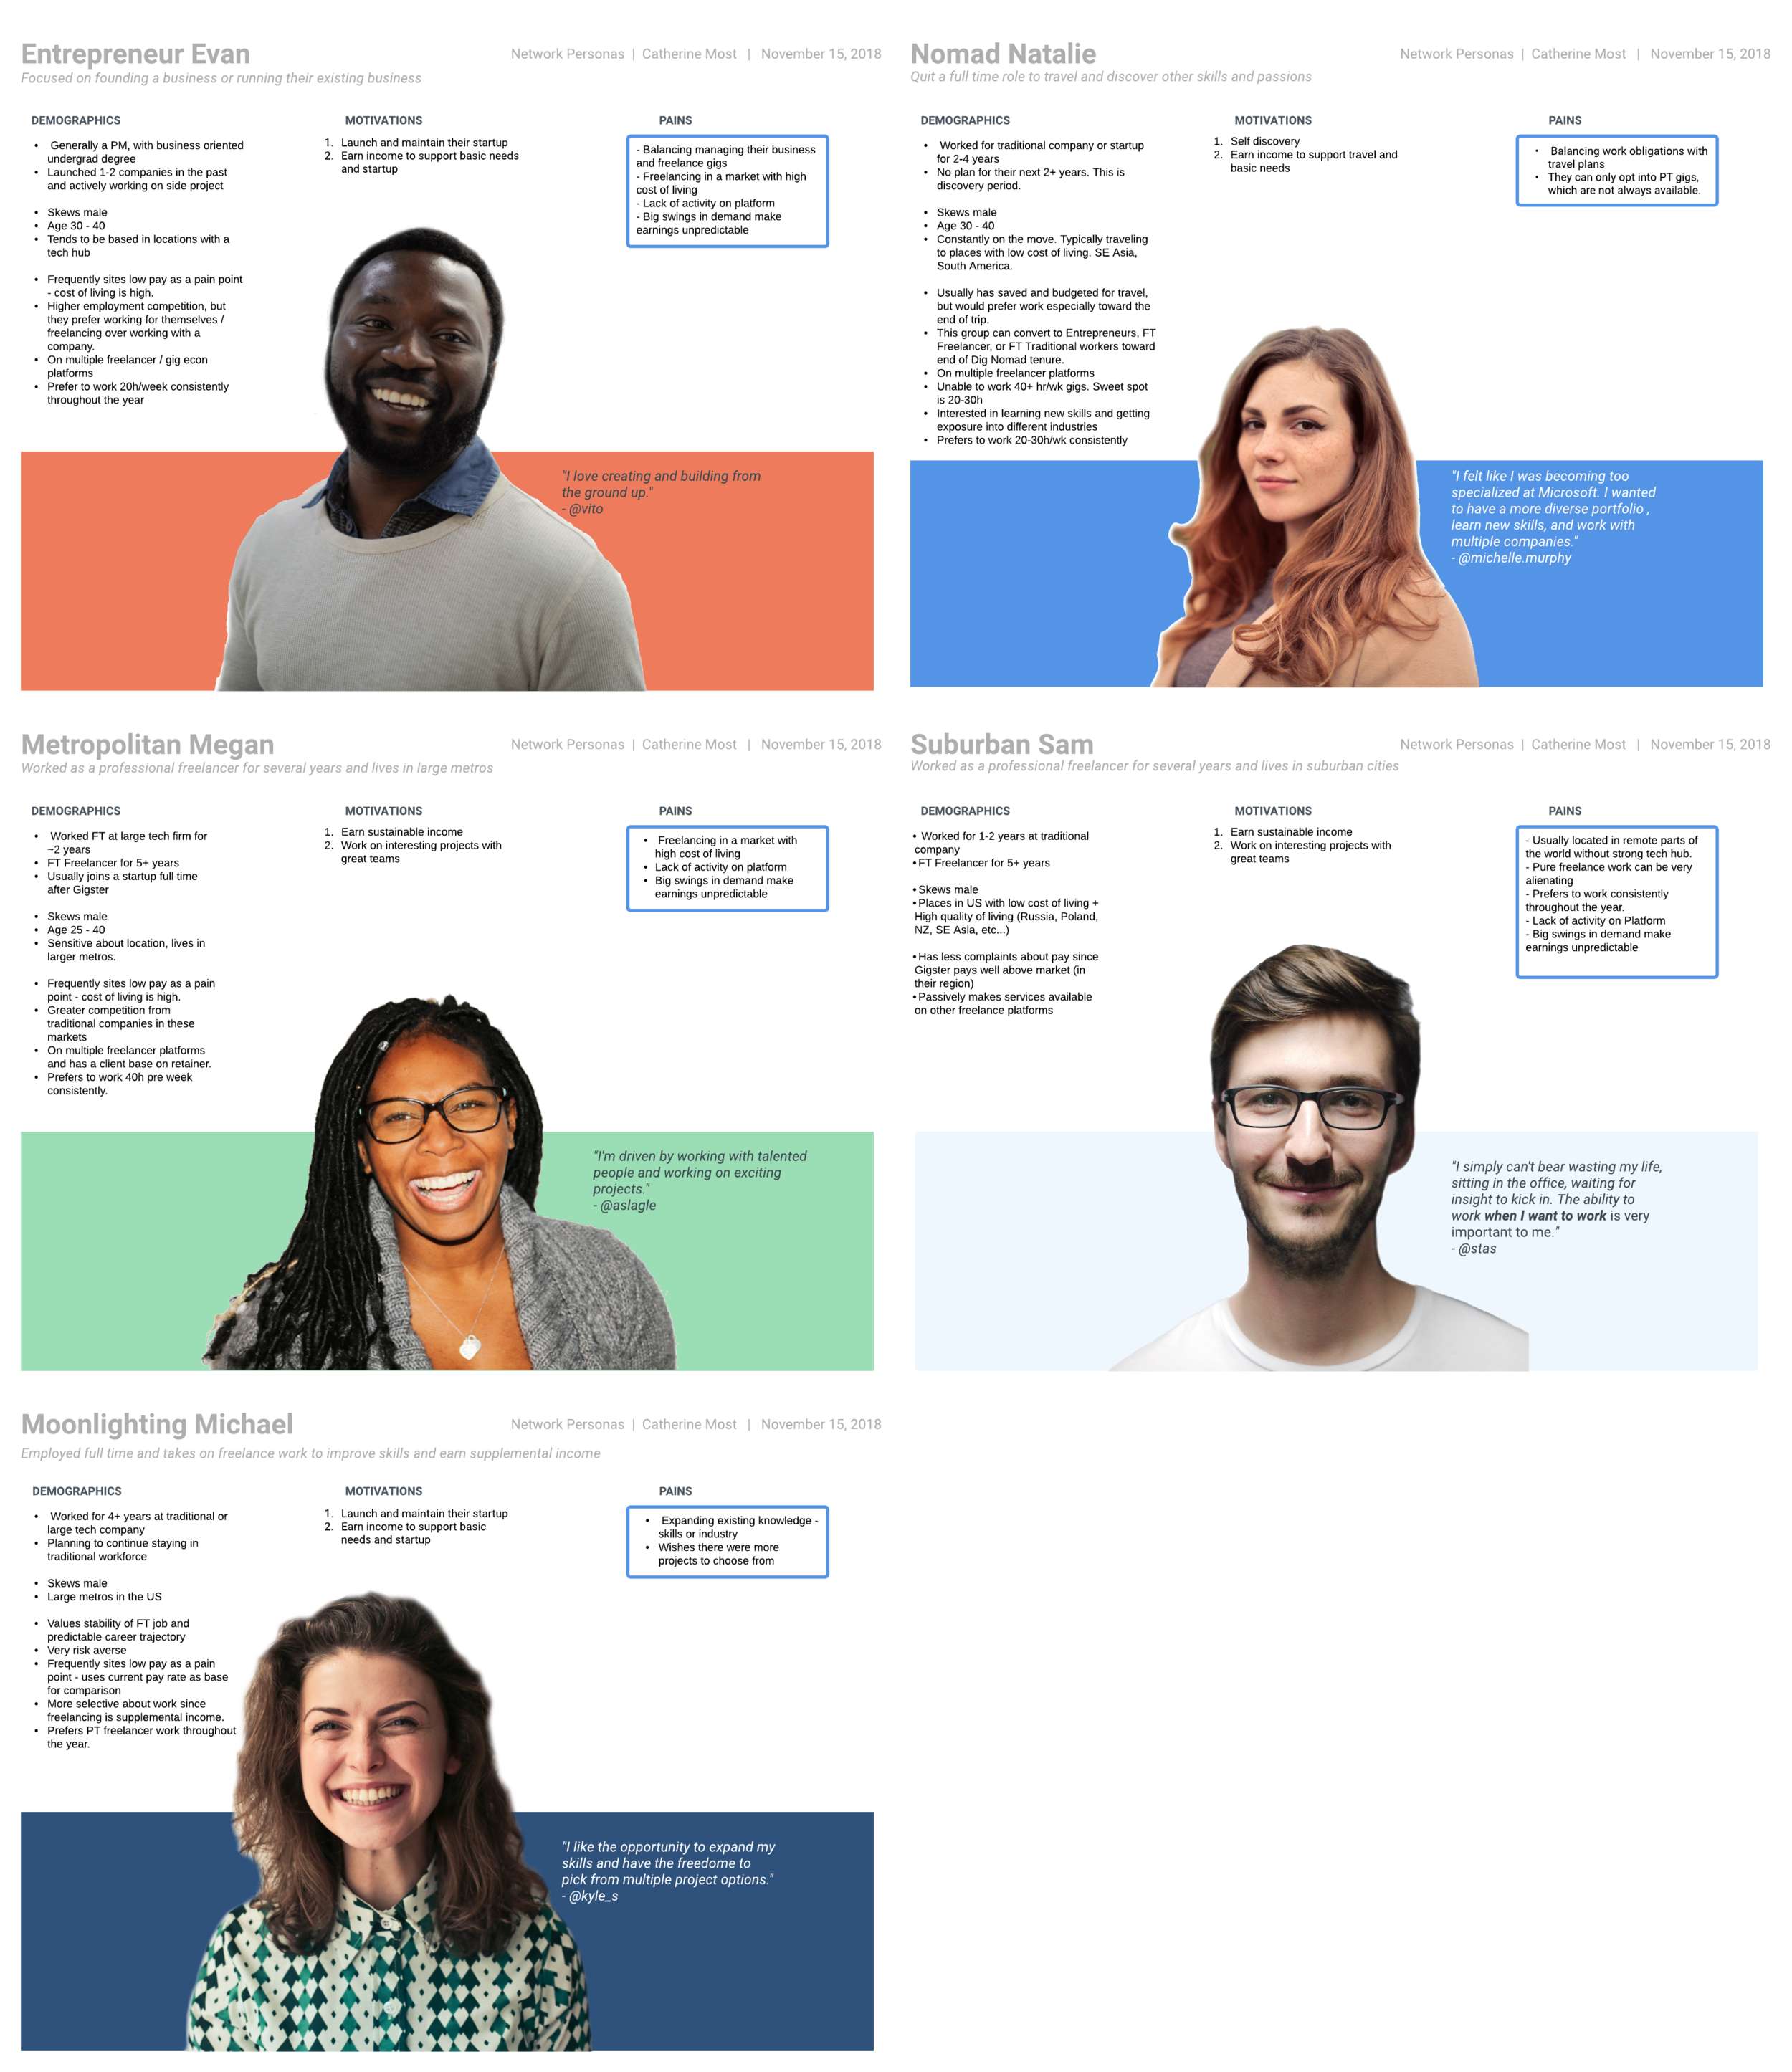 Network Personas CM 4 10 18.png